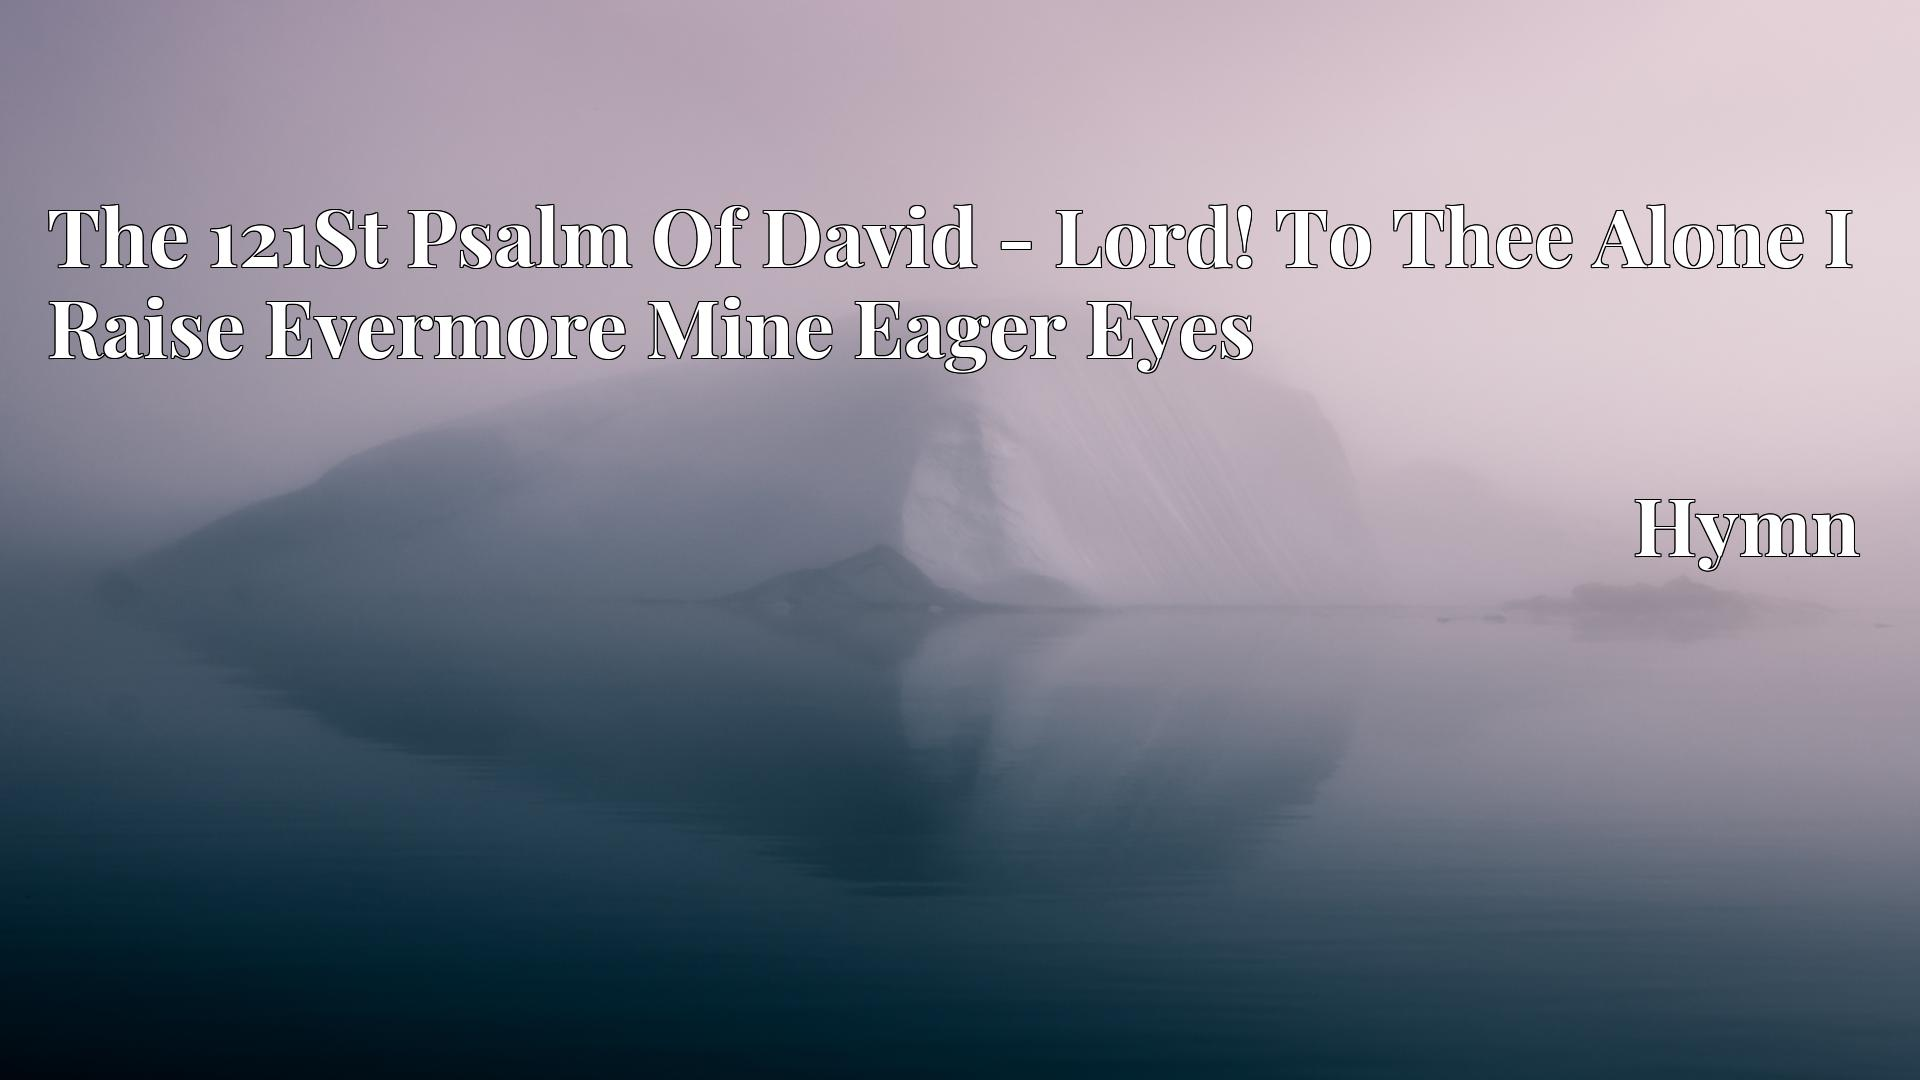 The 121St Psalm Of David - Lord! To Thee Alone I Raise Evermore Mine Eager Eyes - Hymn